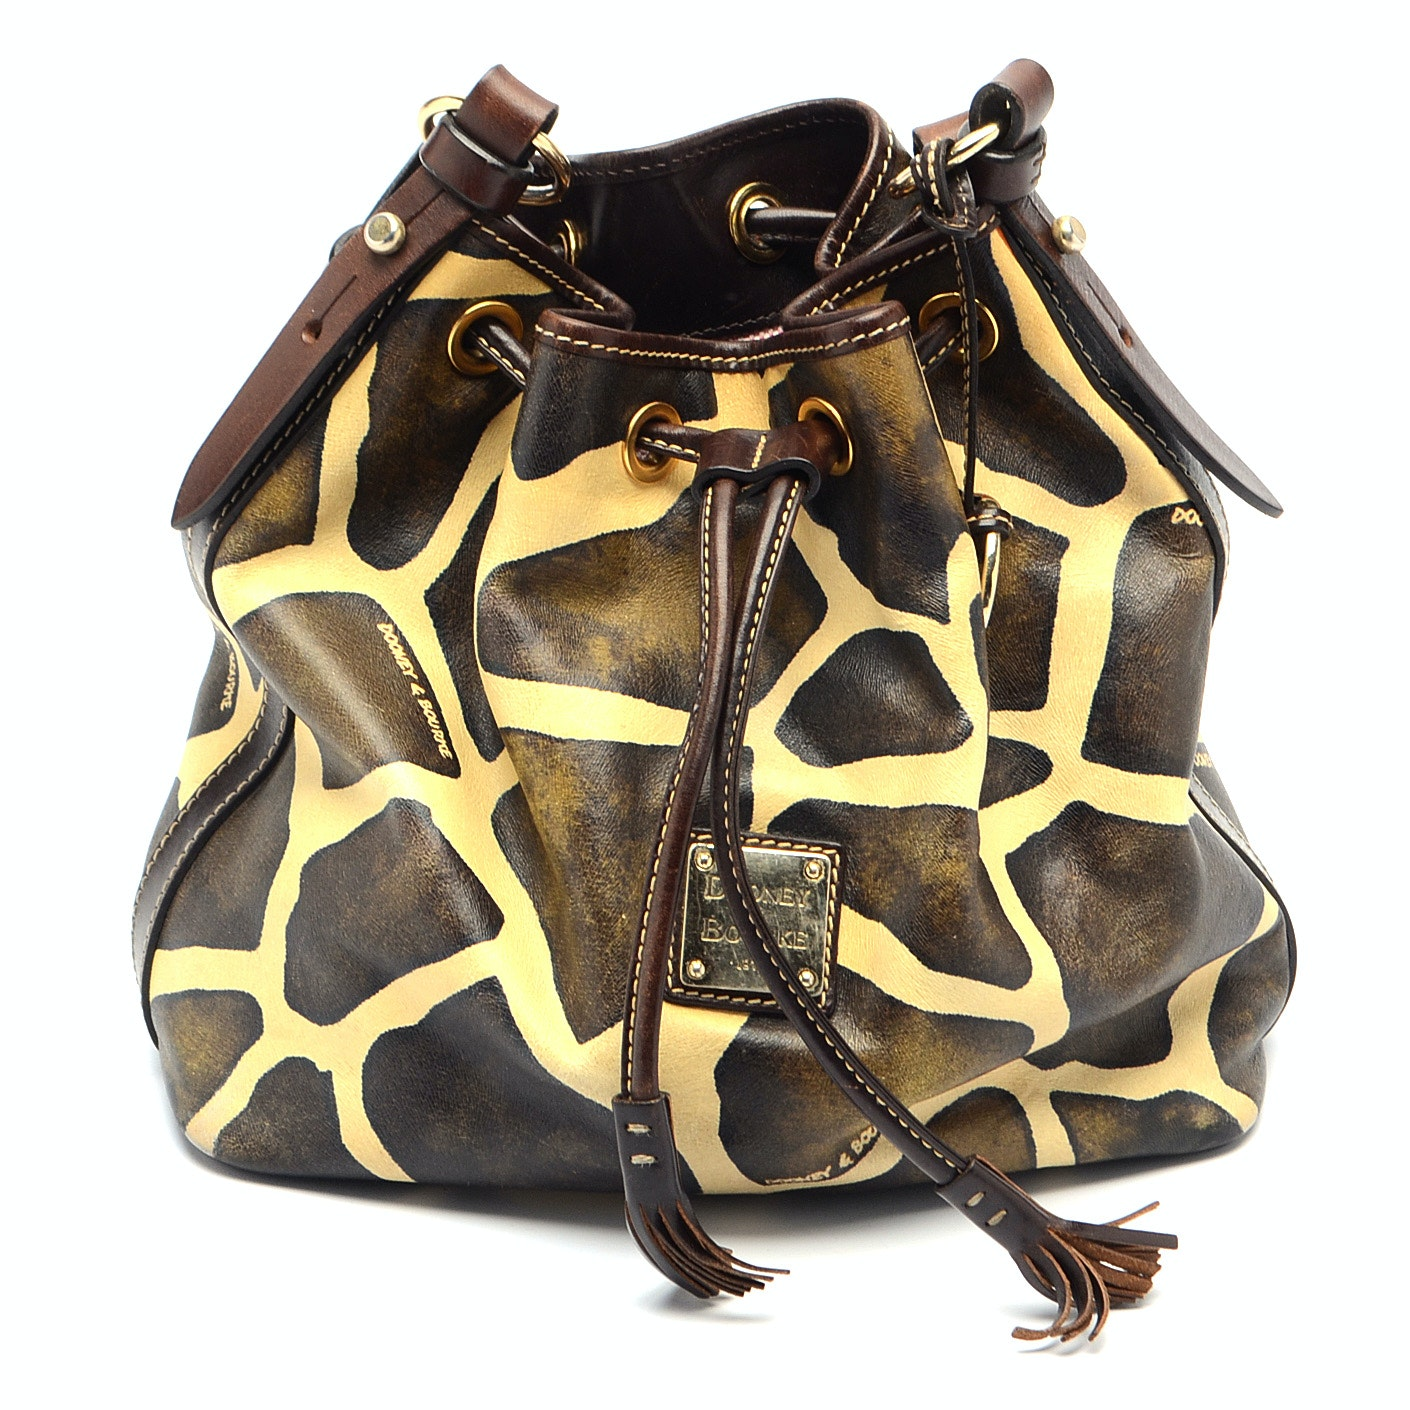 Dooney & Bourke Giraffe Bucket Bag